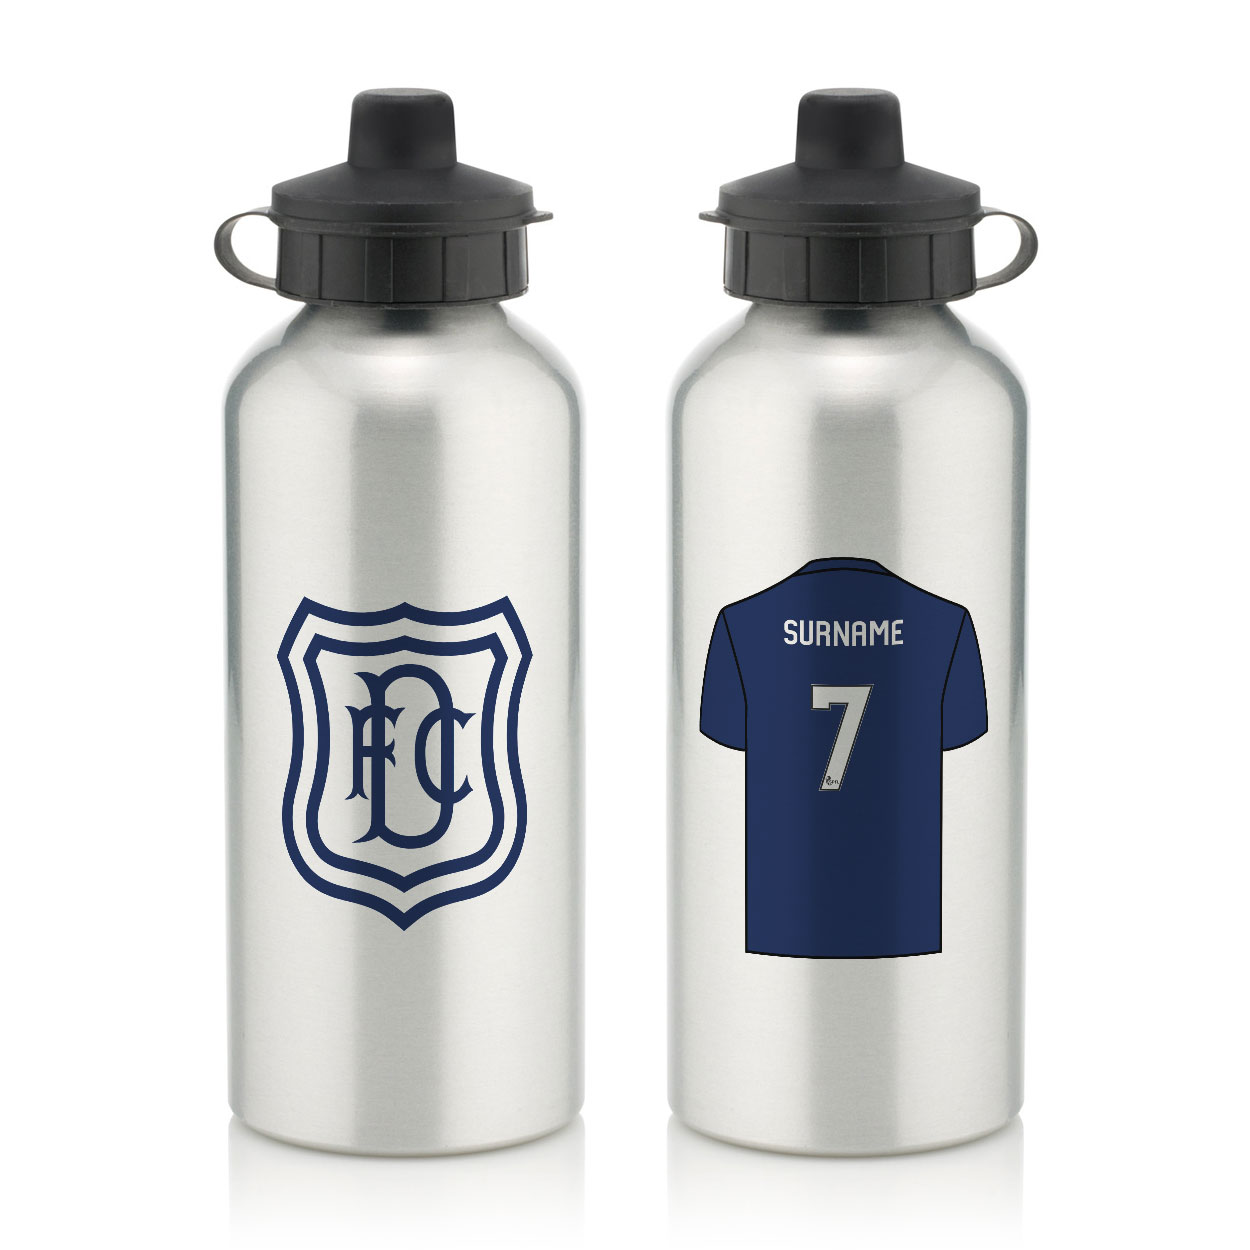 Dundee FC Aluminium Water Bottle